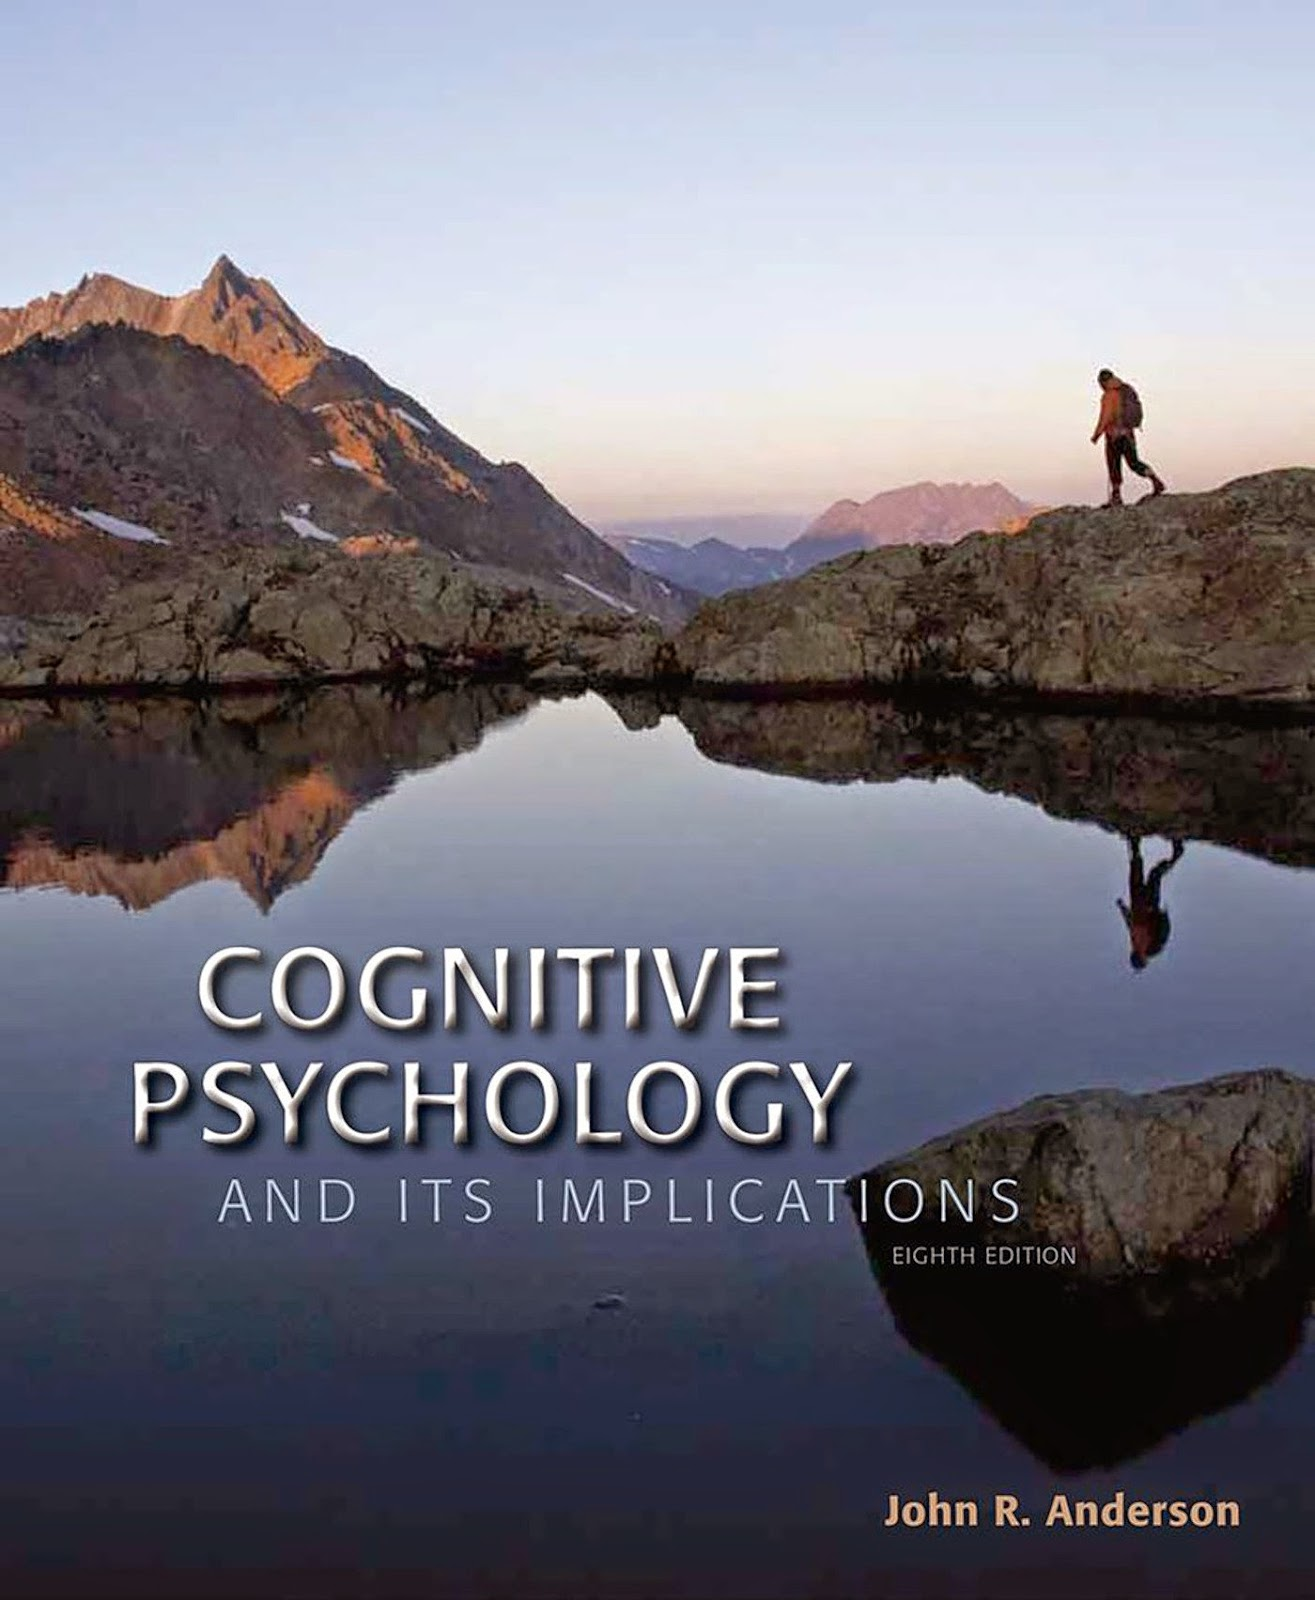 http://www.kingcheapebooks.com/2015/05/cognitive-psychology-and-its.html